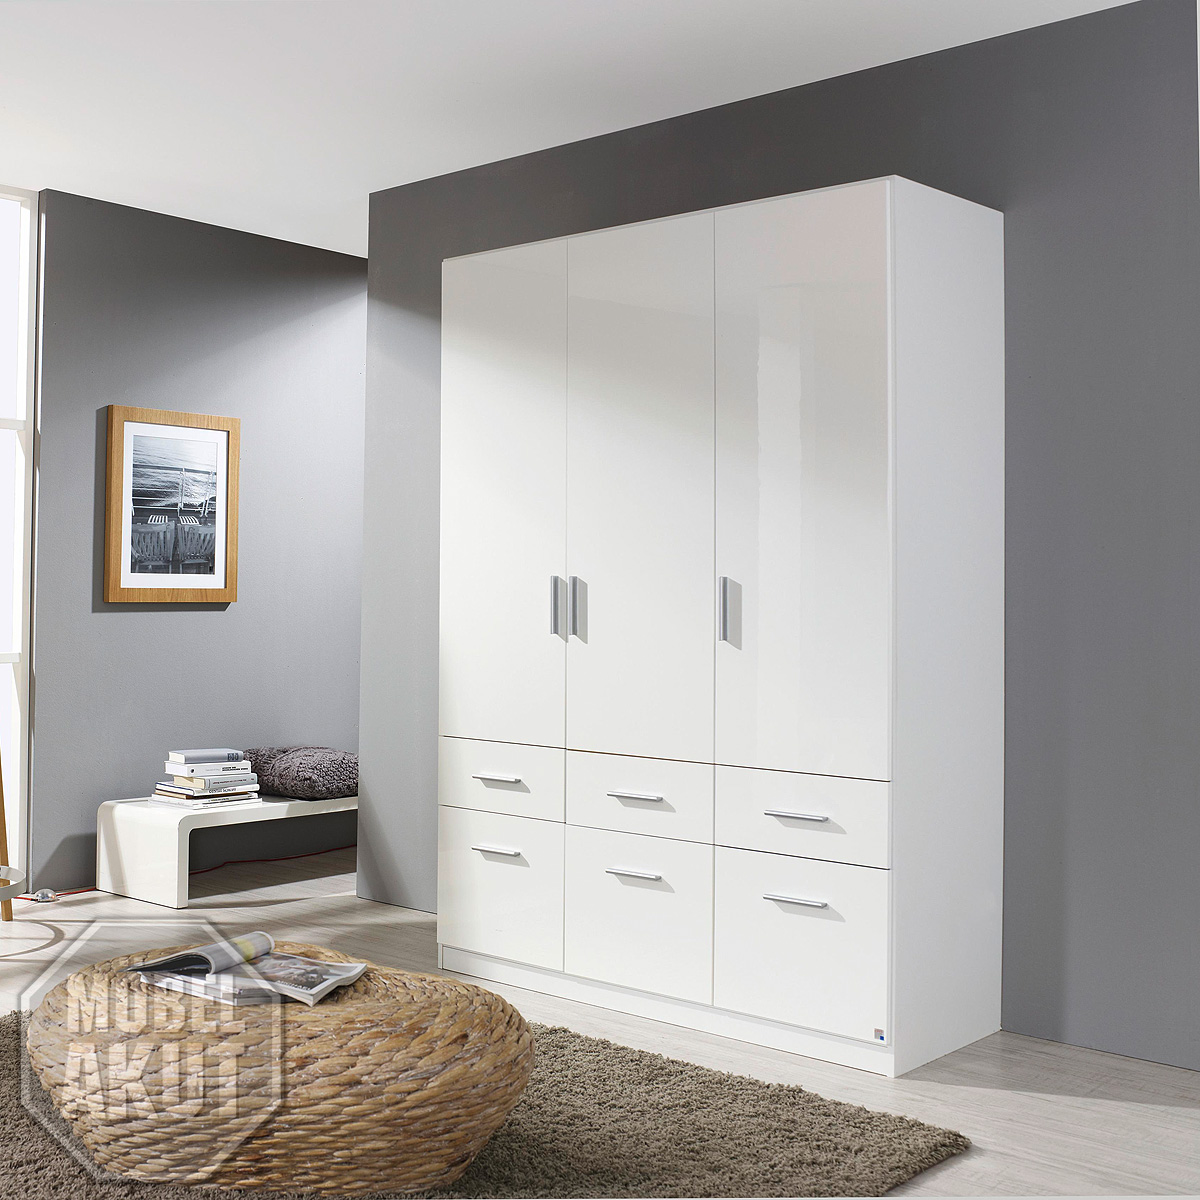 kleiderschrank celle schrank dreht renschrank in wei hochglanz 136 cm ebay. Black Bedroom Furniture Sets. Home Design Ideas